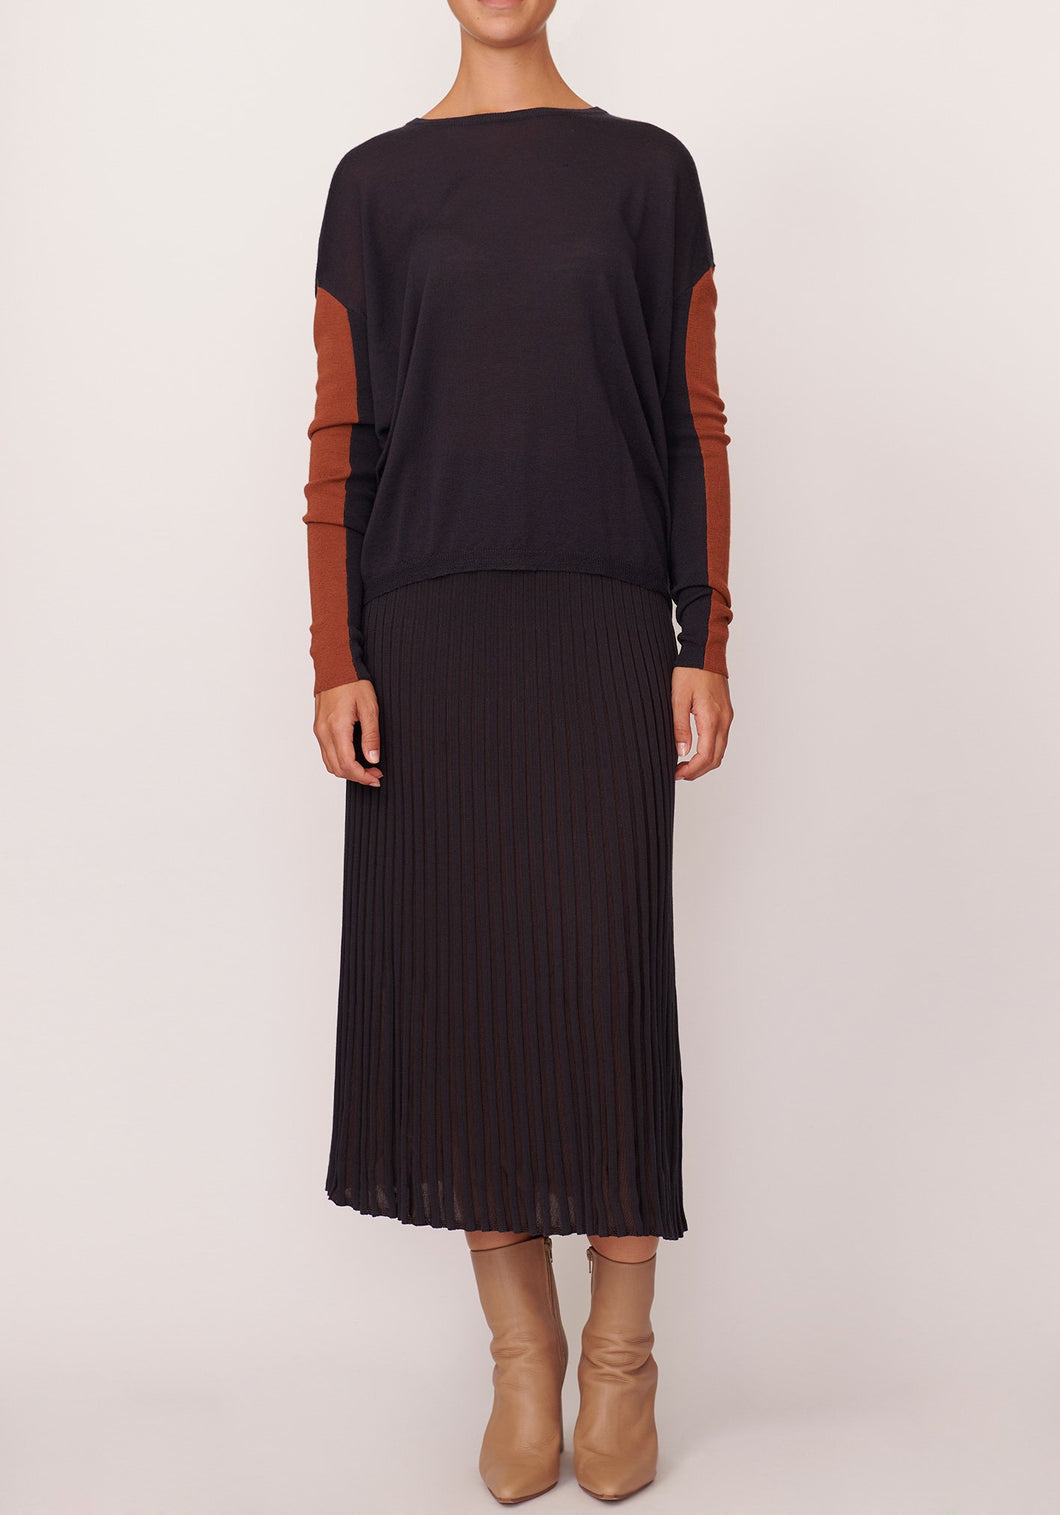 Scope Ribbed Skirt - Slate